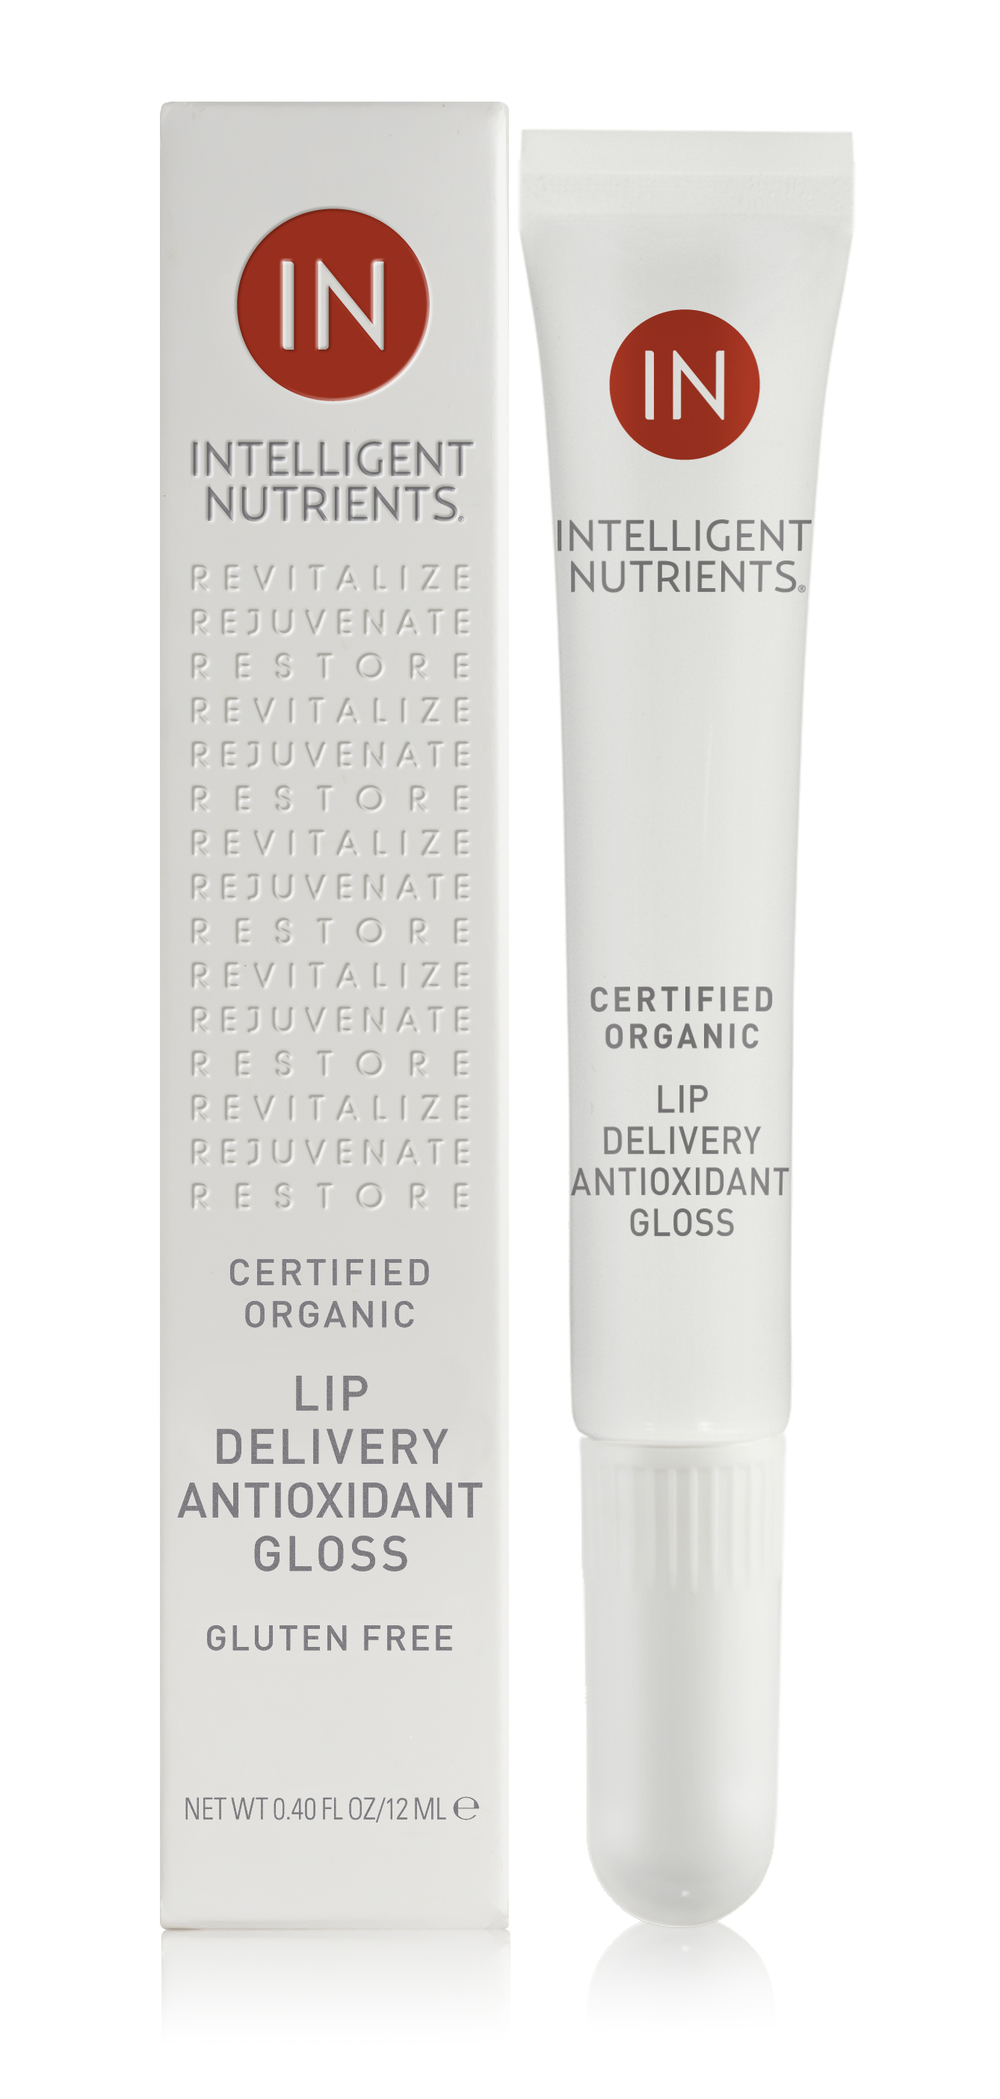 Lip Delivery Antioxidant Gloss - Cranberry Glow (DKK190/12g)